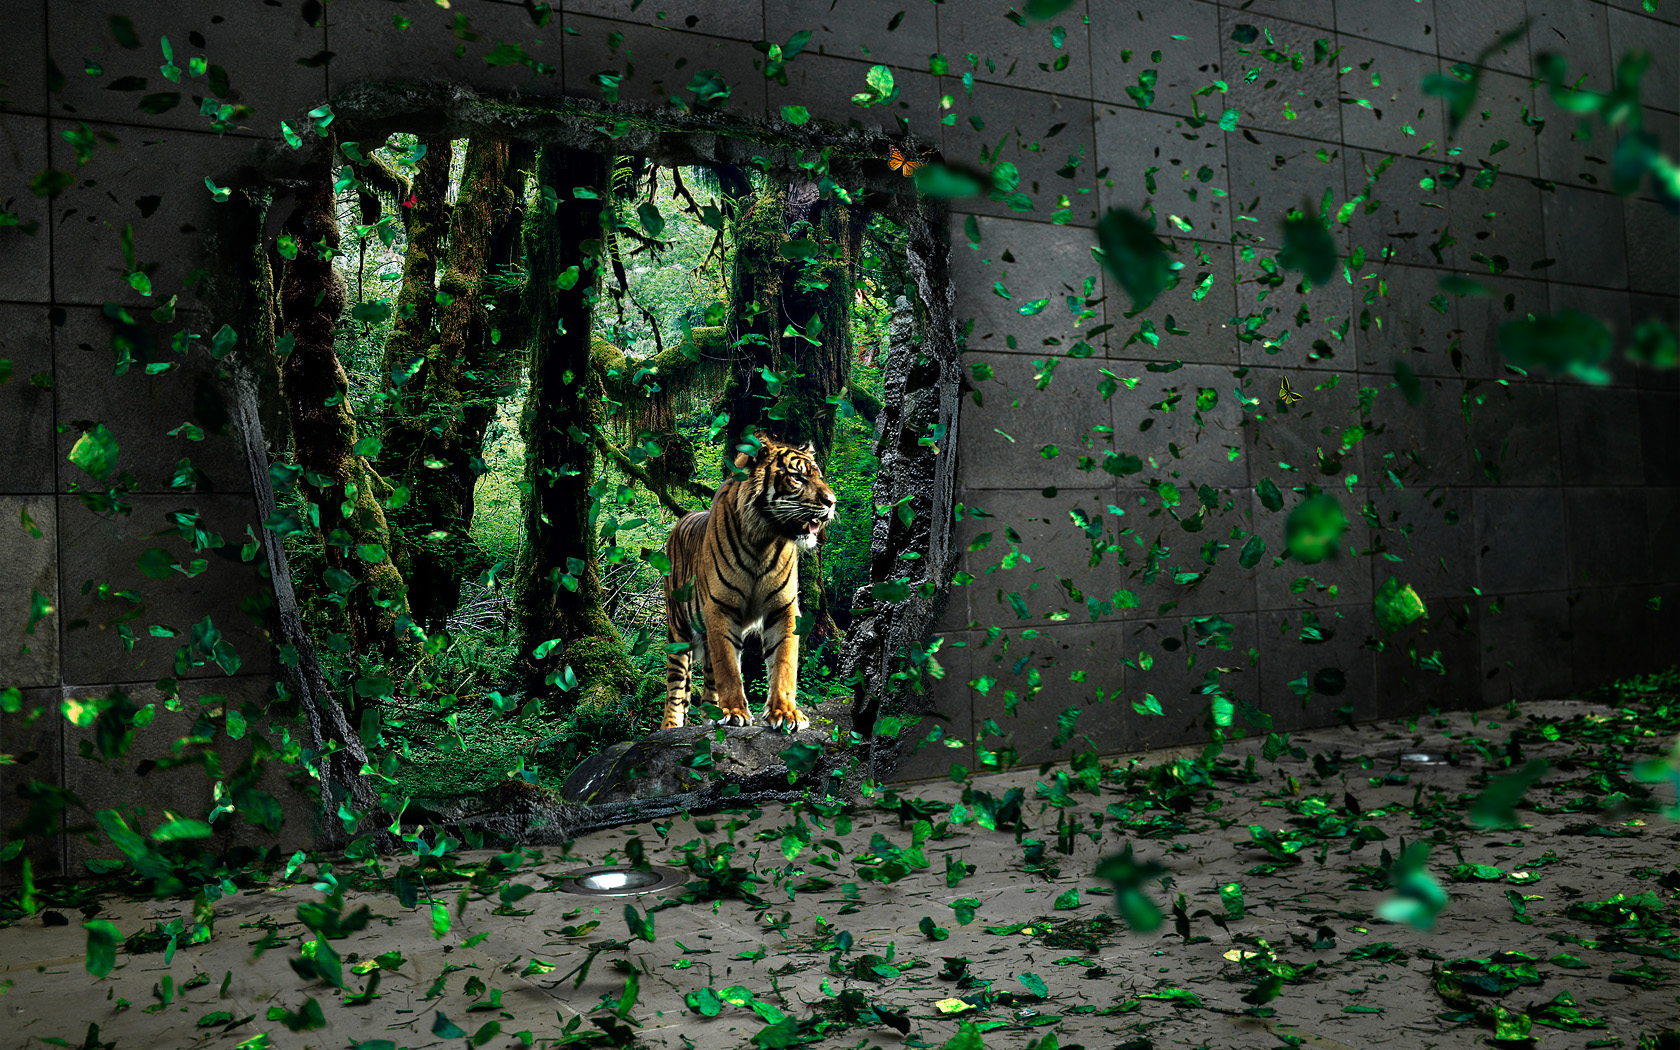 Jungle Wallpaper Desktop: Forest: Concrete Jungle